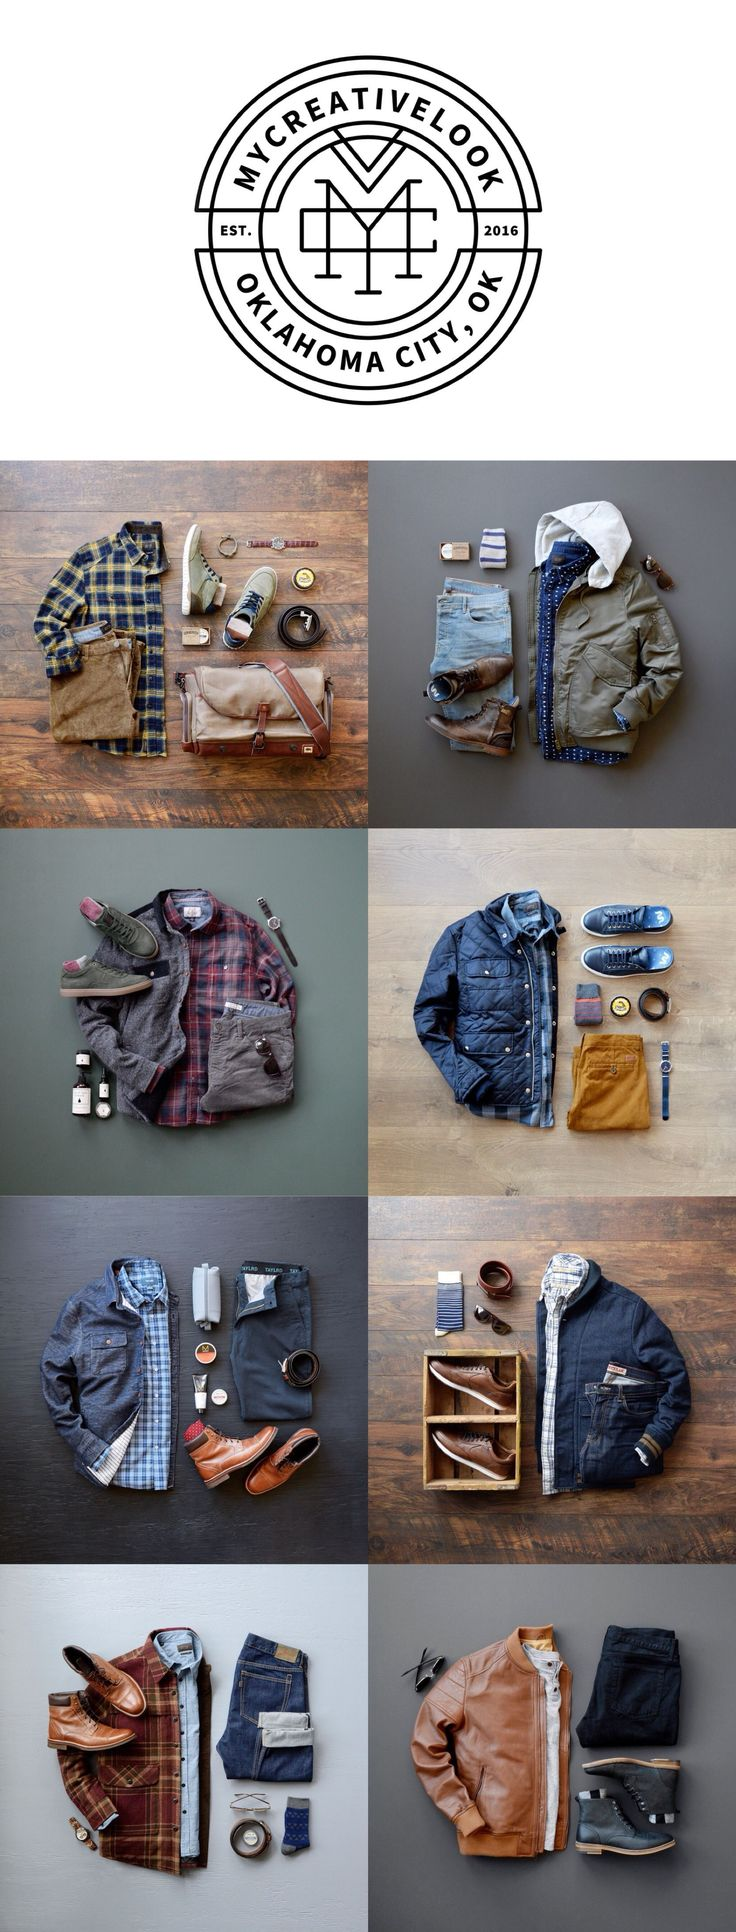 Update Your Style & Wardrobe by checking out Men's collections from MyCreativeLook | Casual Wear | Outfits | Winter Fashion | Boots, Sneakers and more. Visit mycreativelook.com/ #wardrobe #mensfashion #mensstyle #grid #clothinggrids #sneakersoutfit #men'scasualoutfits